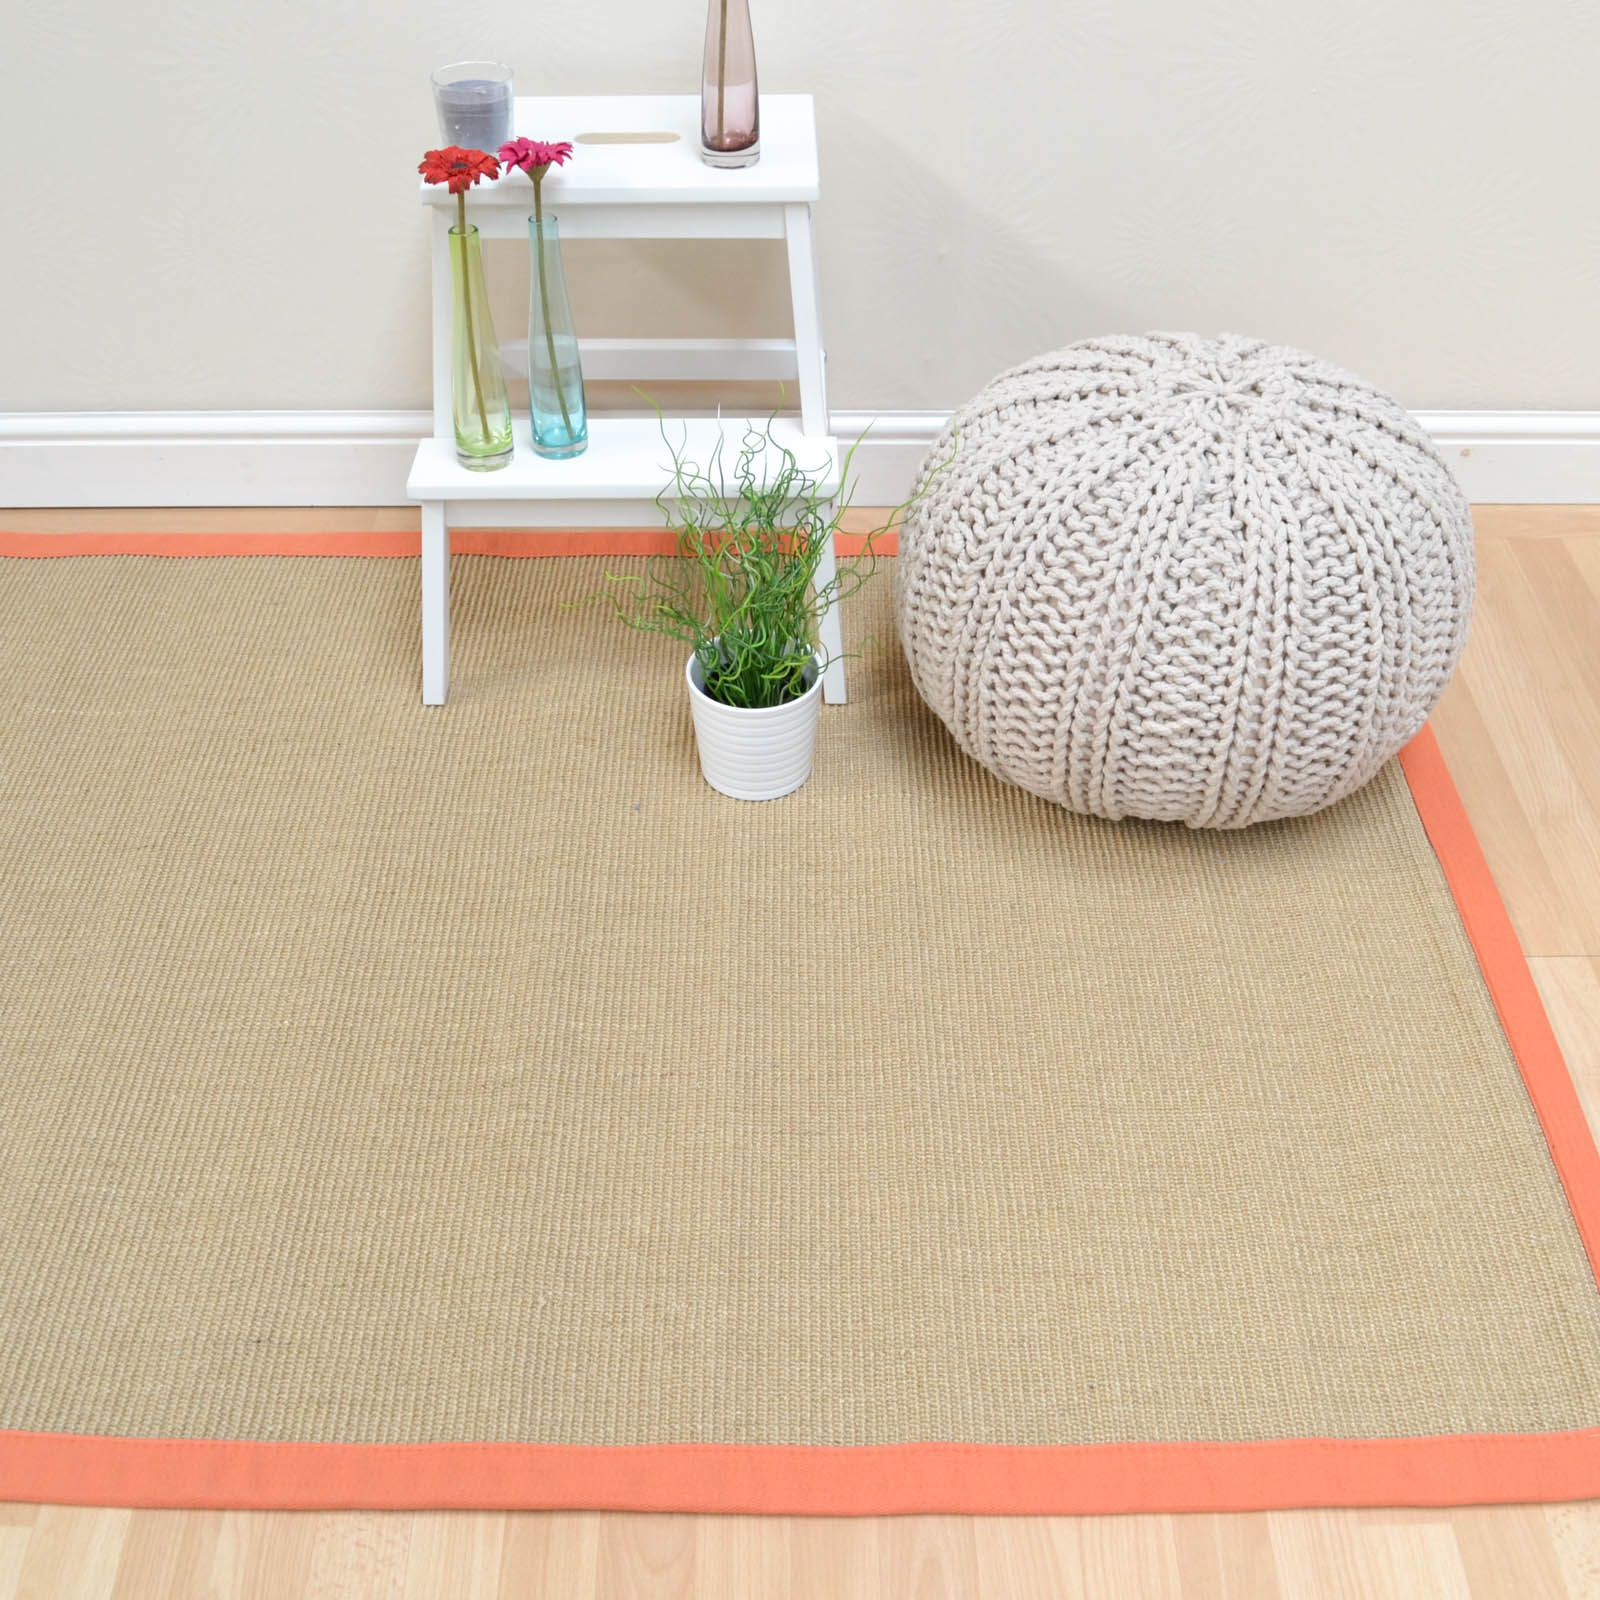 Sisal Rugs In Linen With An Orange